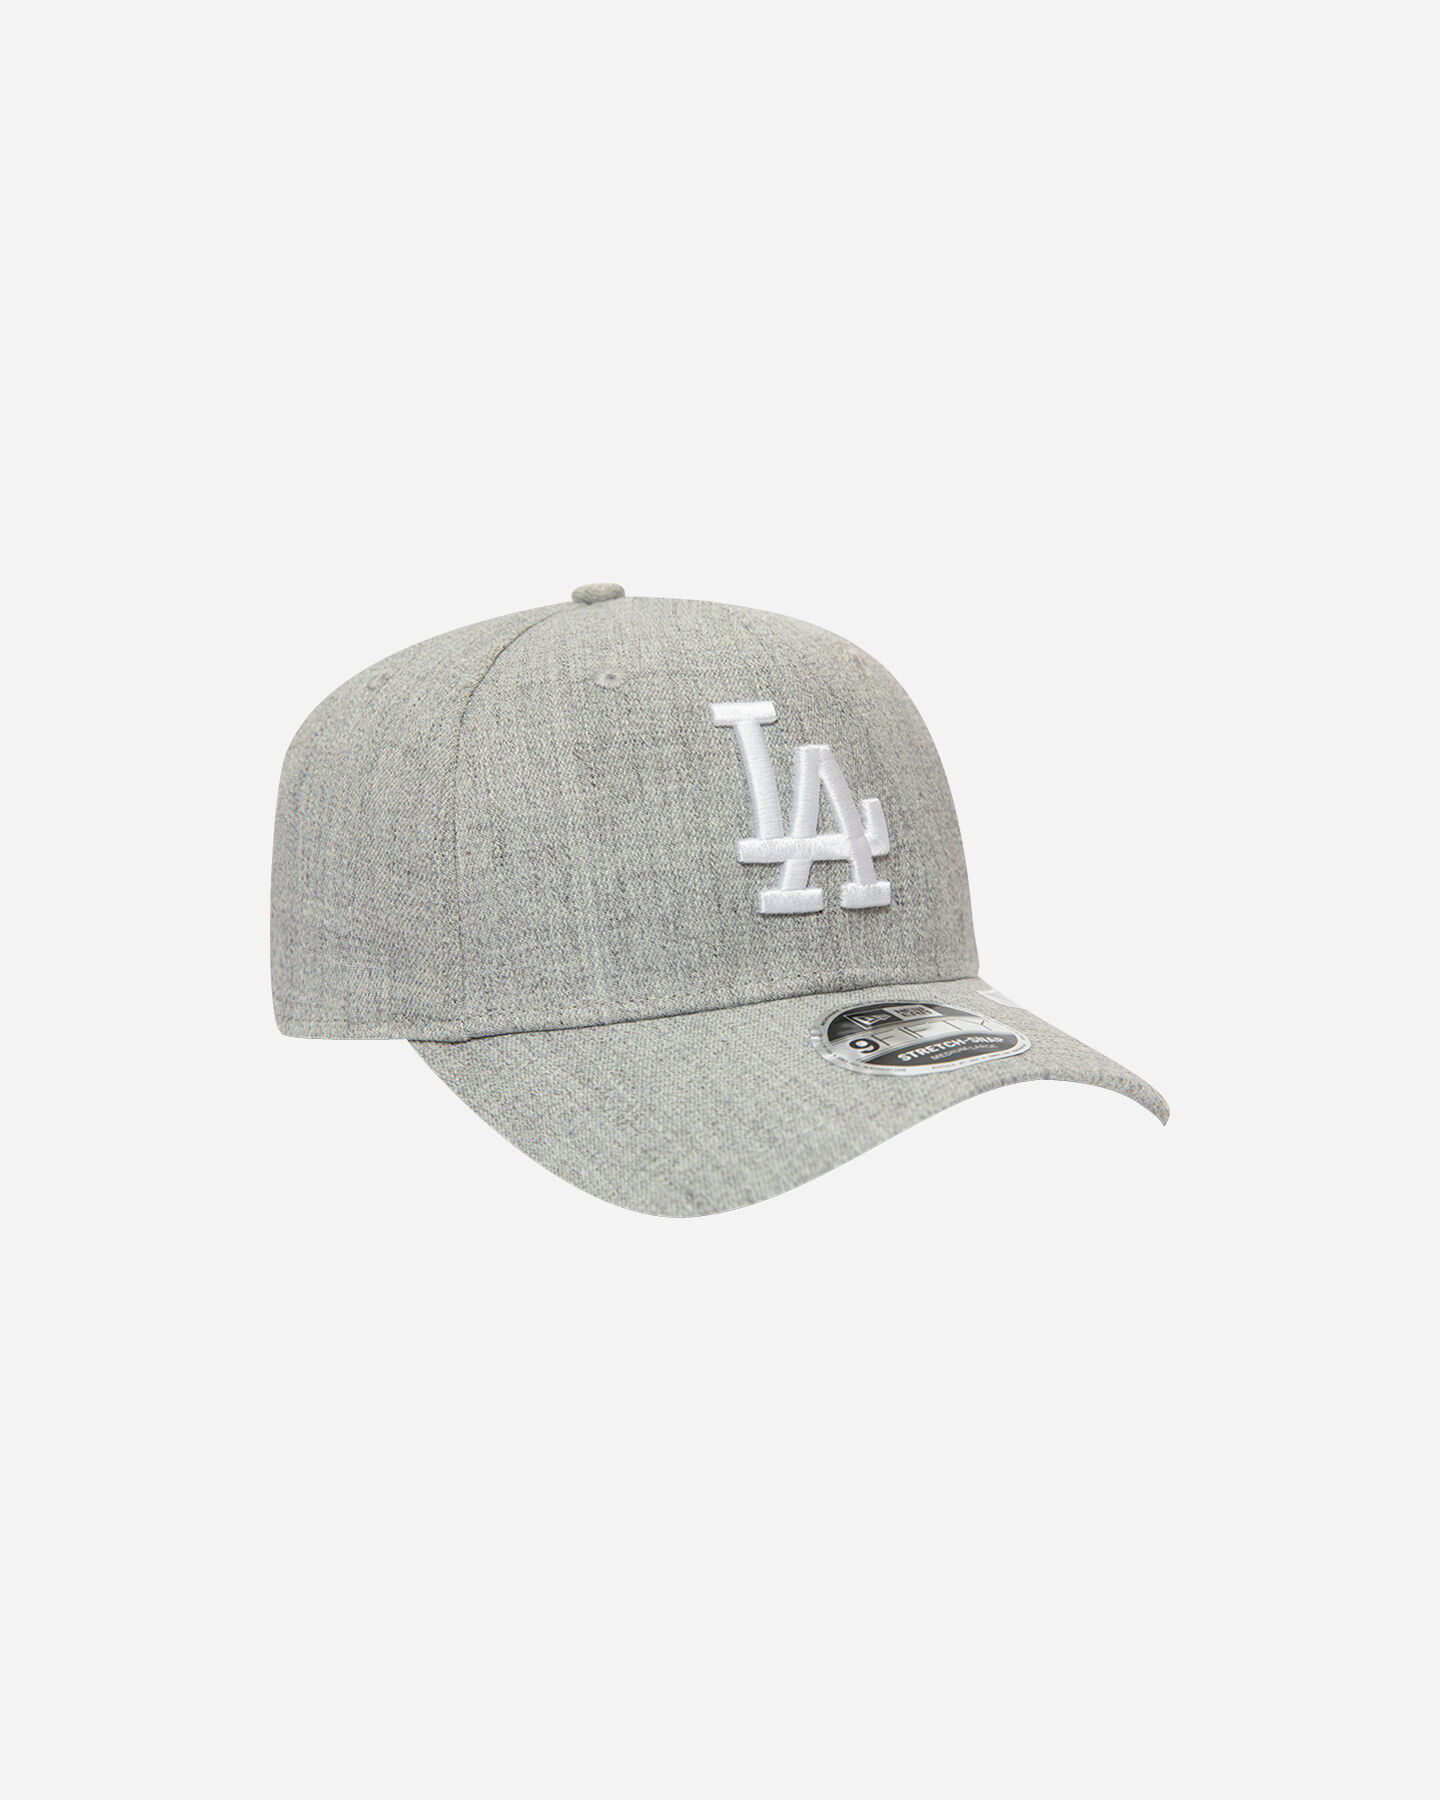 Cappellino NEW ERA LOS ANGELES DODGERS 9FIFTY HEATHER BASE S5170126 scatto 2